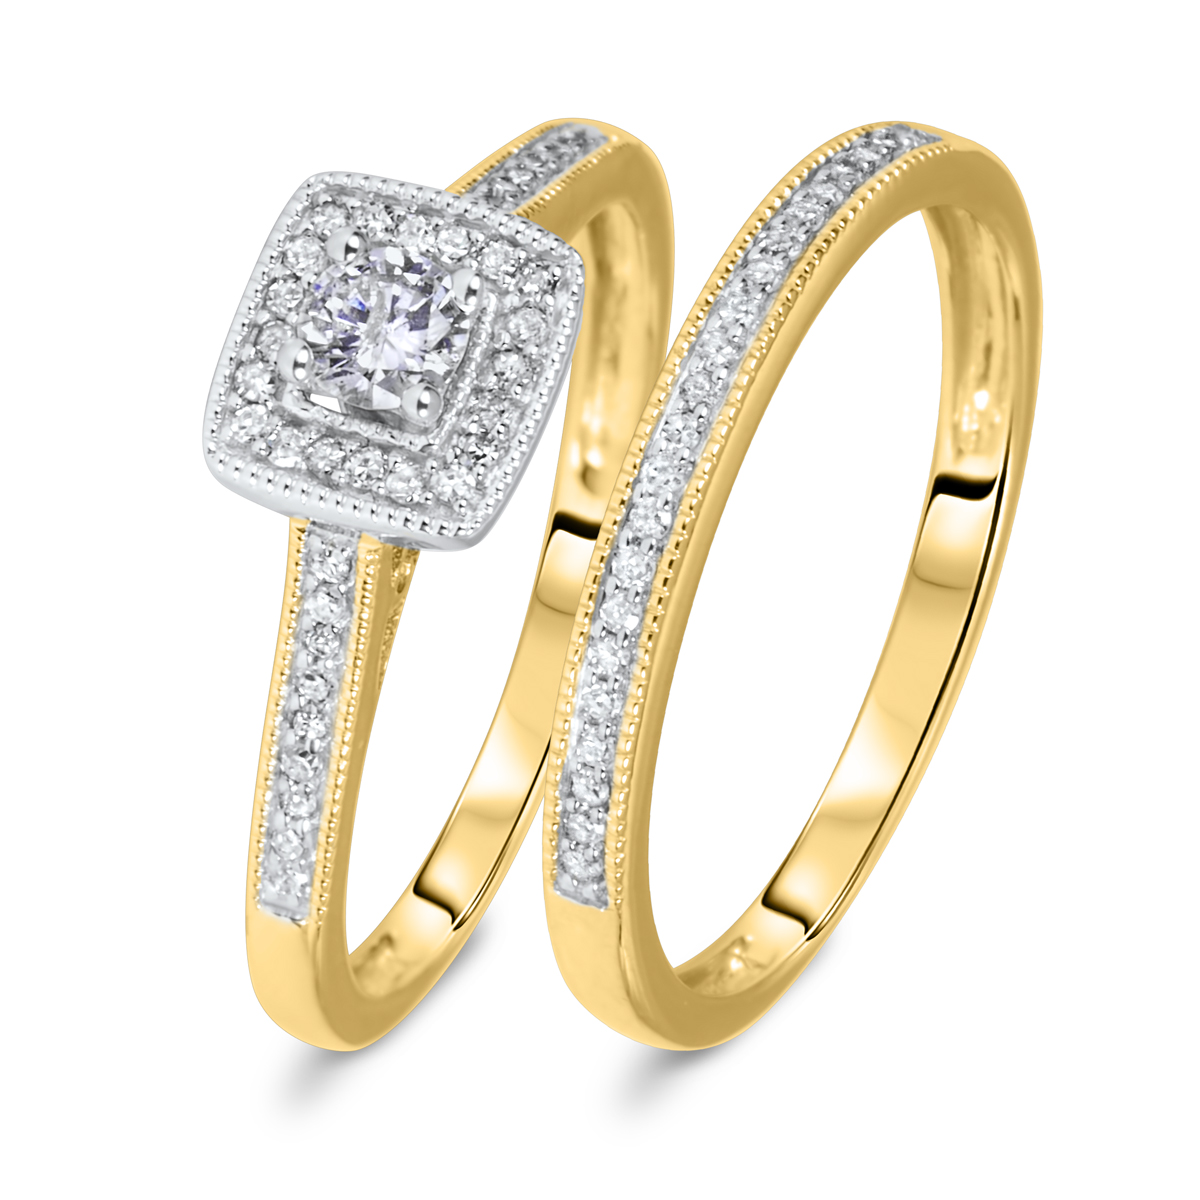 1/3 CT. T.W. Round Cut Diamond Ladies Bridal Wedding Ring Set 10K Yellow Gold